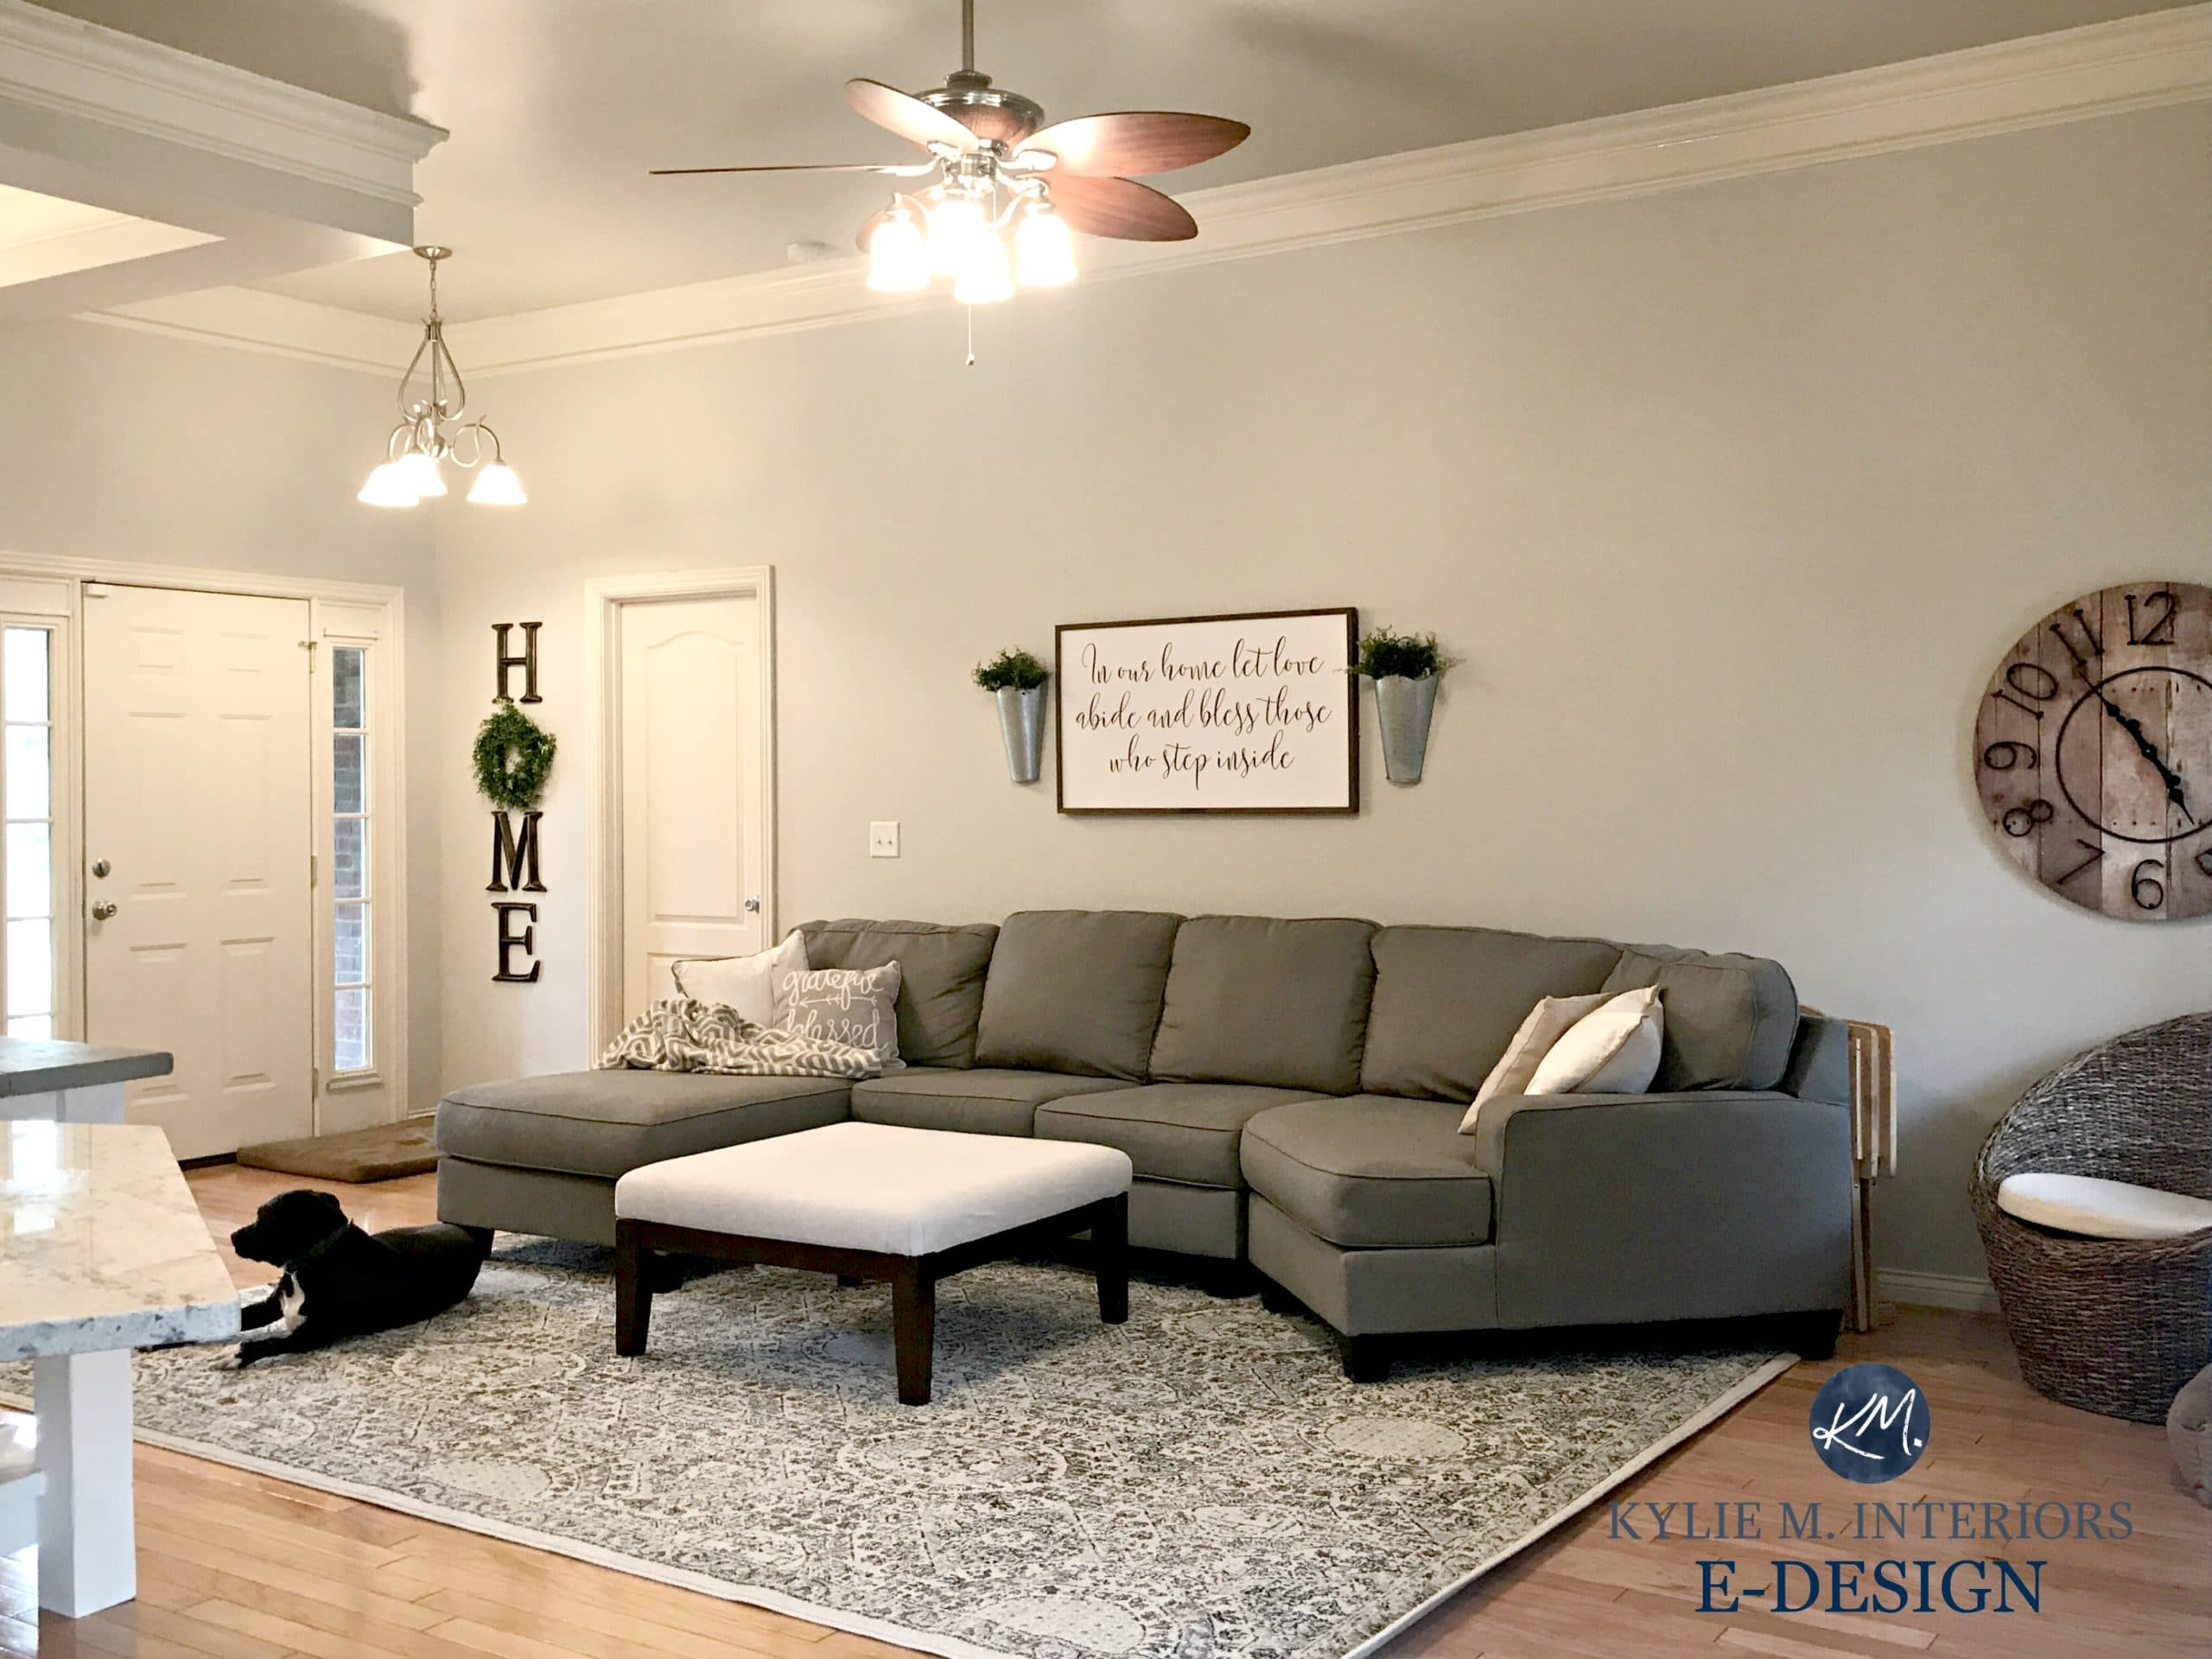 Stunning Sectional Couchand Area Kylie M Living Room Sherwin Williams Agreeable Online Color Consulting Sherwin Williams Agreeable Sectional Living Room houzz 01 Sherwin Williams Agreeable Gray